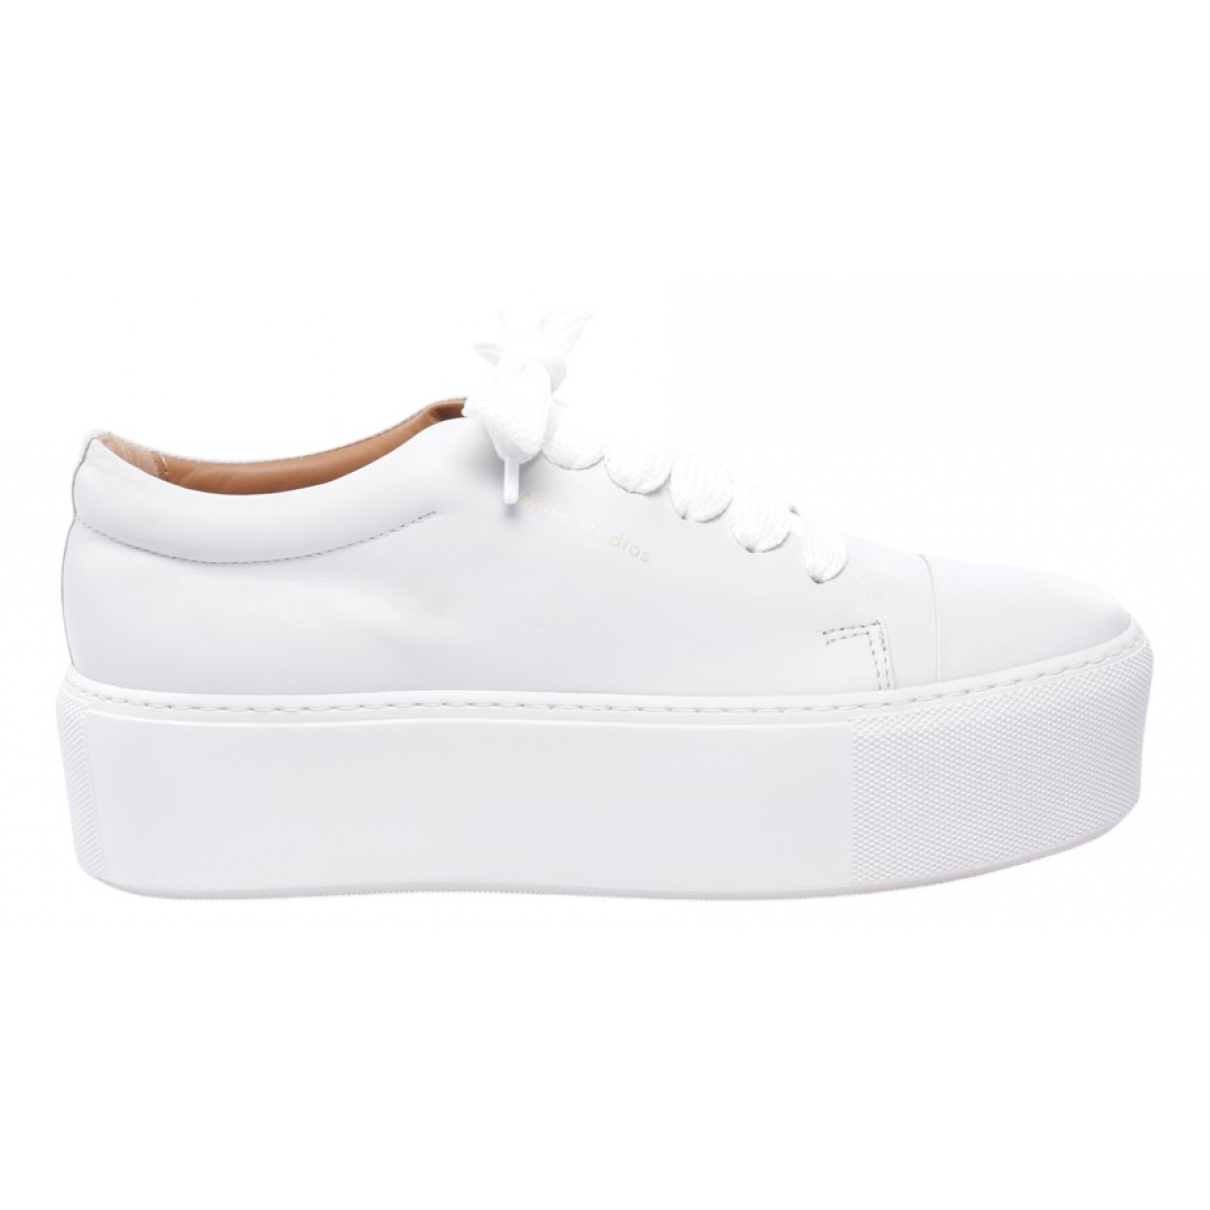 Acne Studios \N White Leather Flats for Women 41 EU